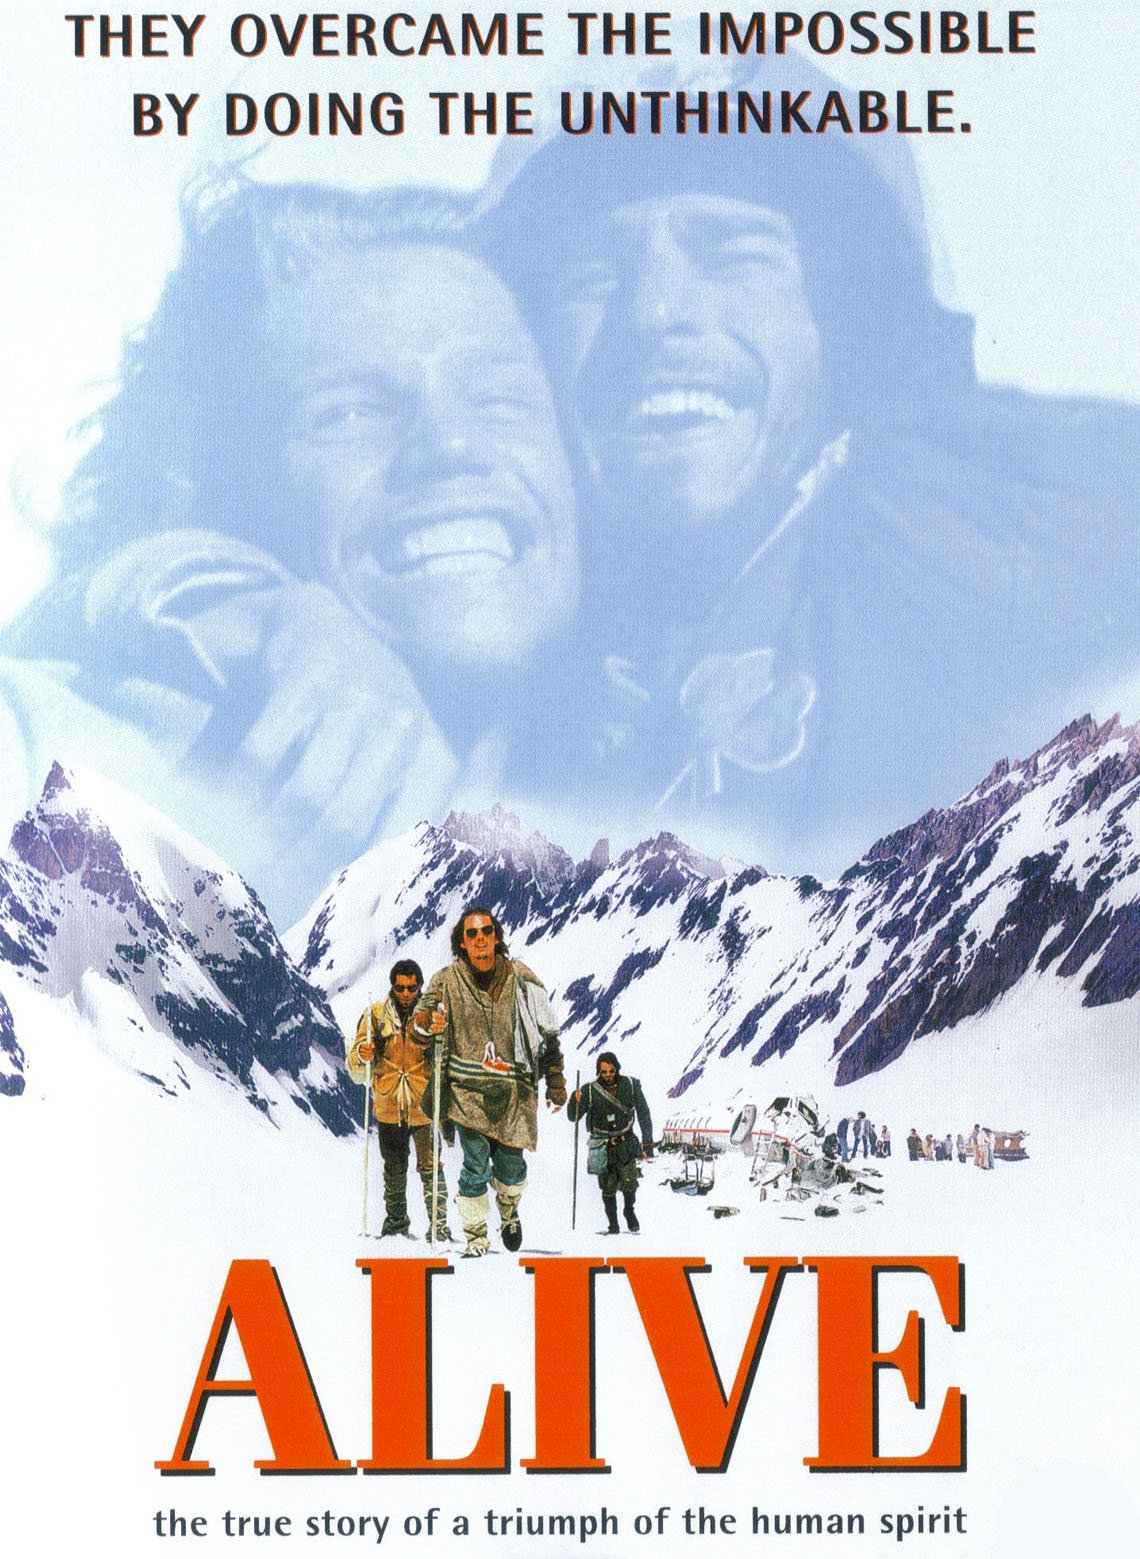 alive-1993-movie-poster